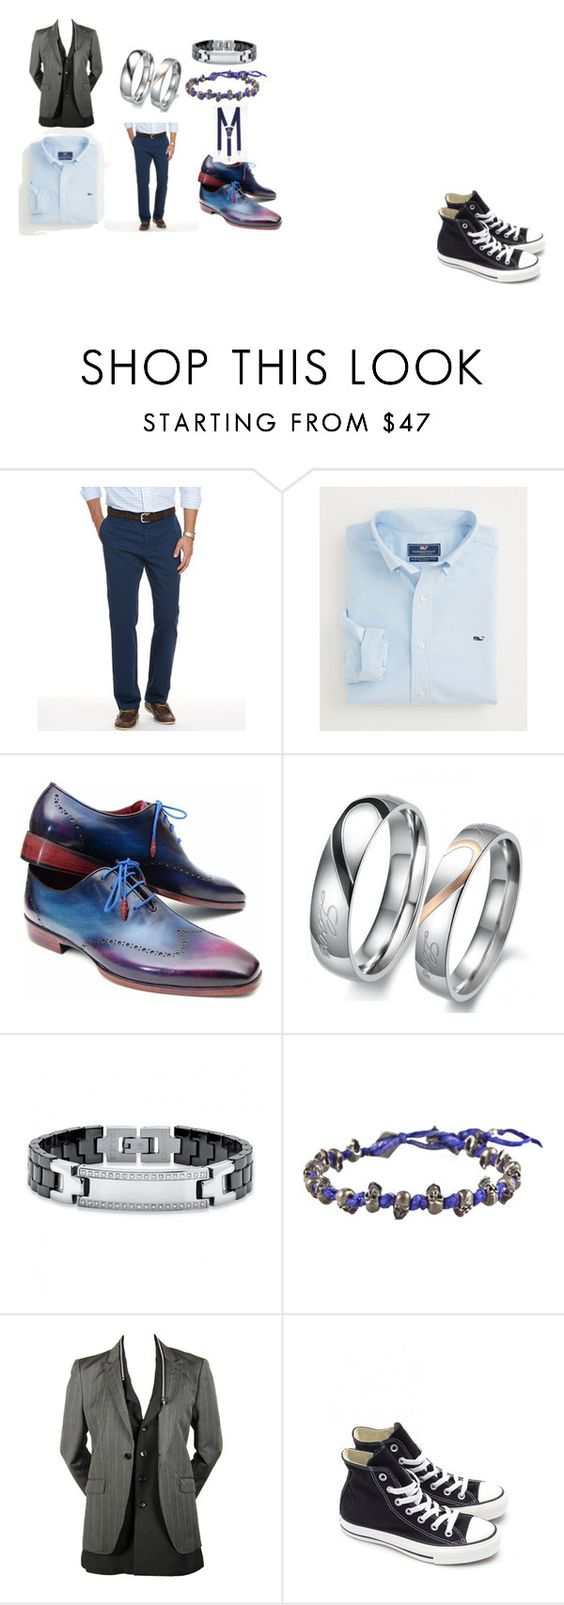 """Men's Chic"" by demijay on Polyvore featuring Vineyard Vines, M. Cohen, Converse, Express, women's clothing, women, female, woman, misses and juniors"